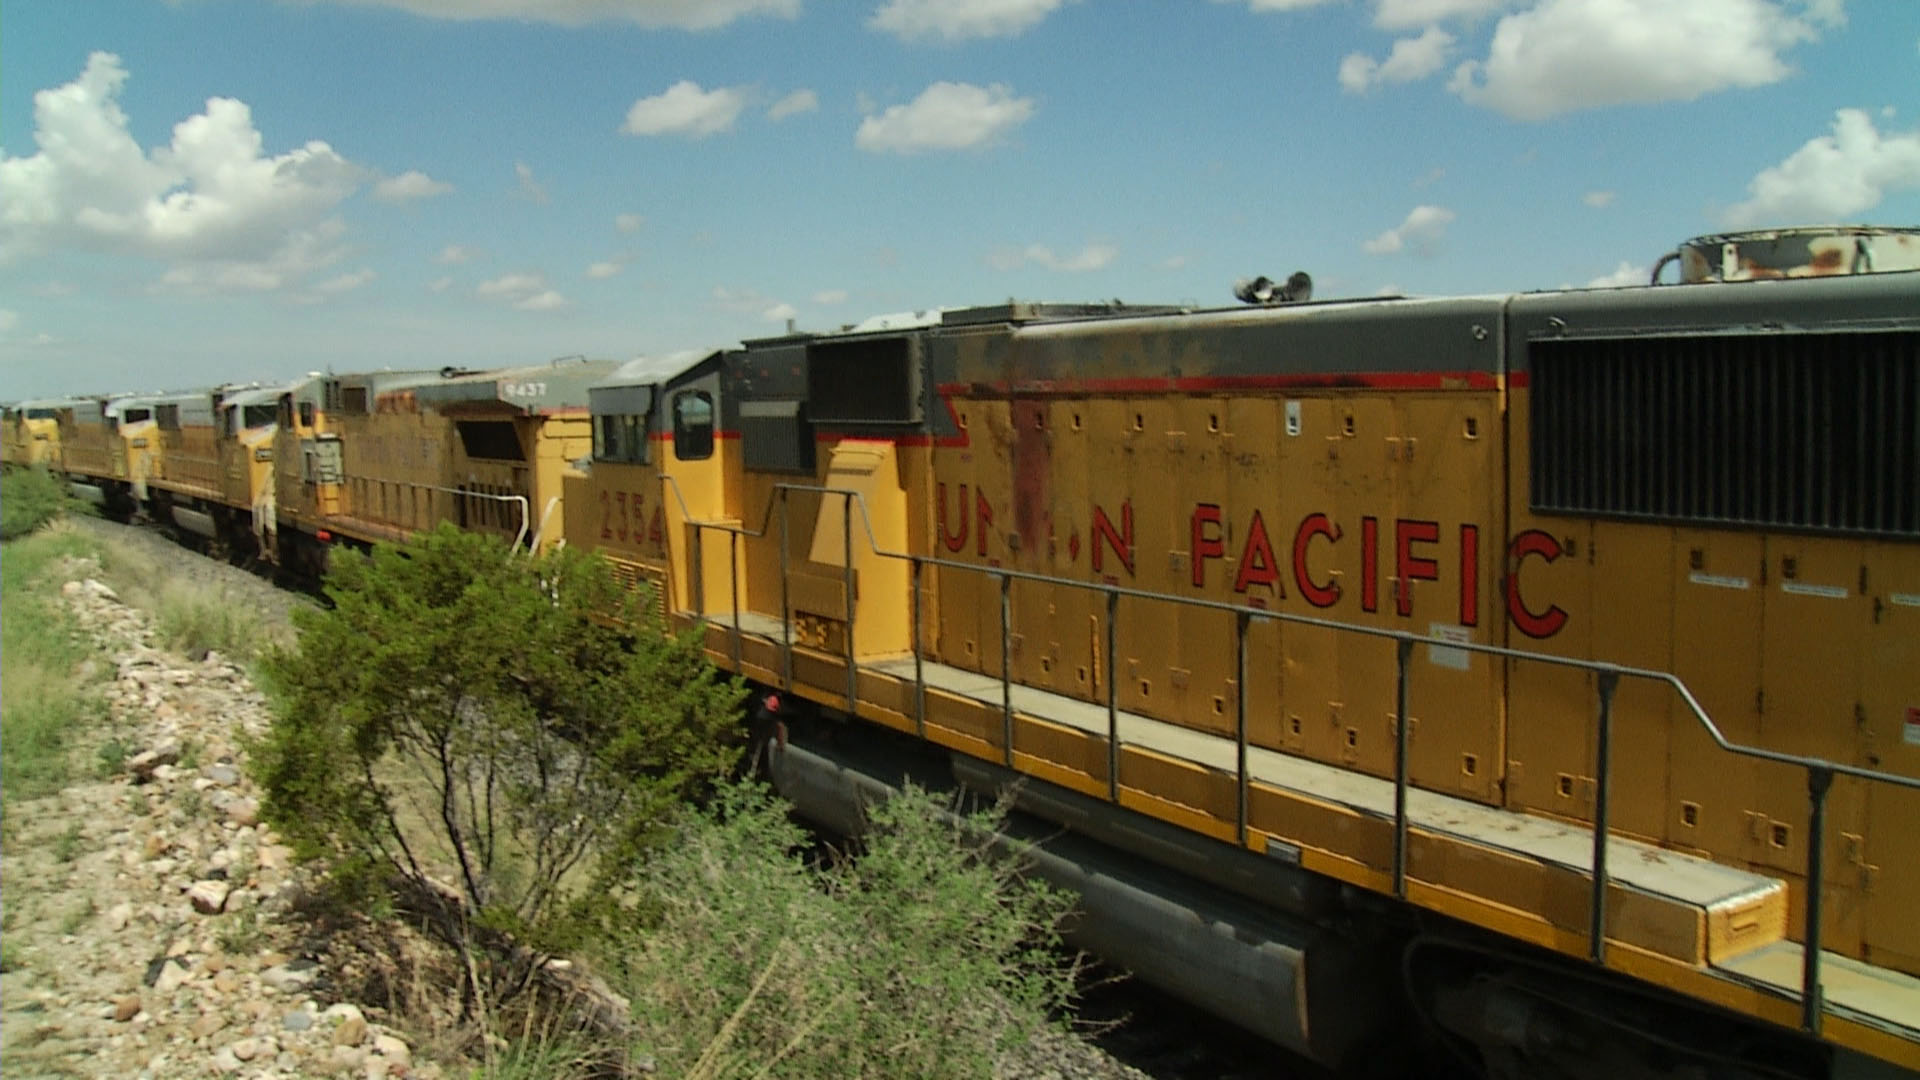 A Union Pacific cargo freight train sits idle on a track in Cochise County.